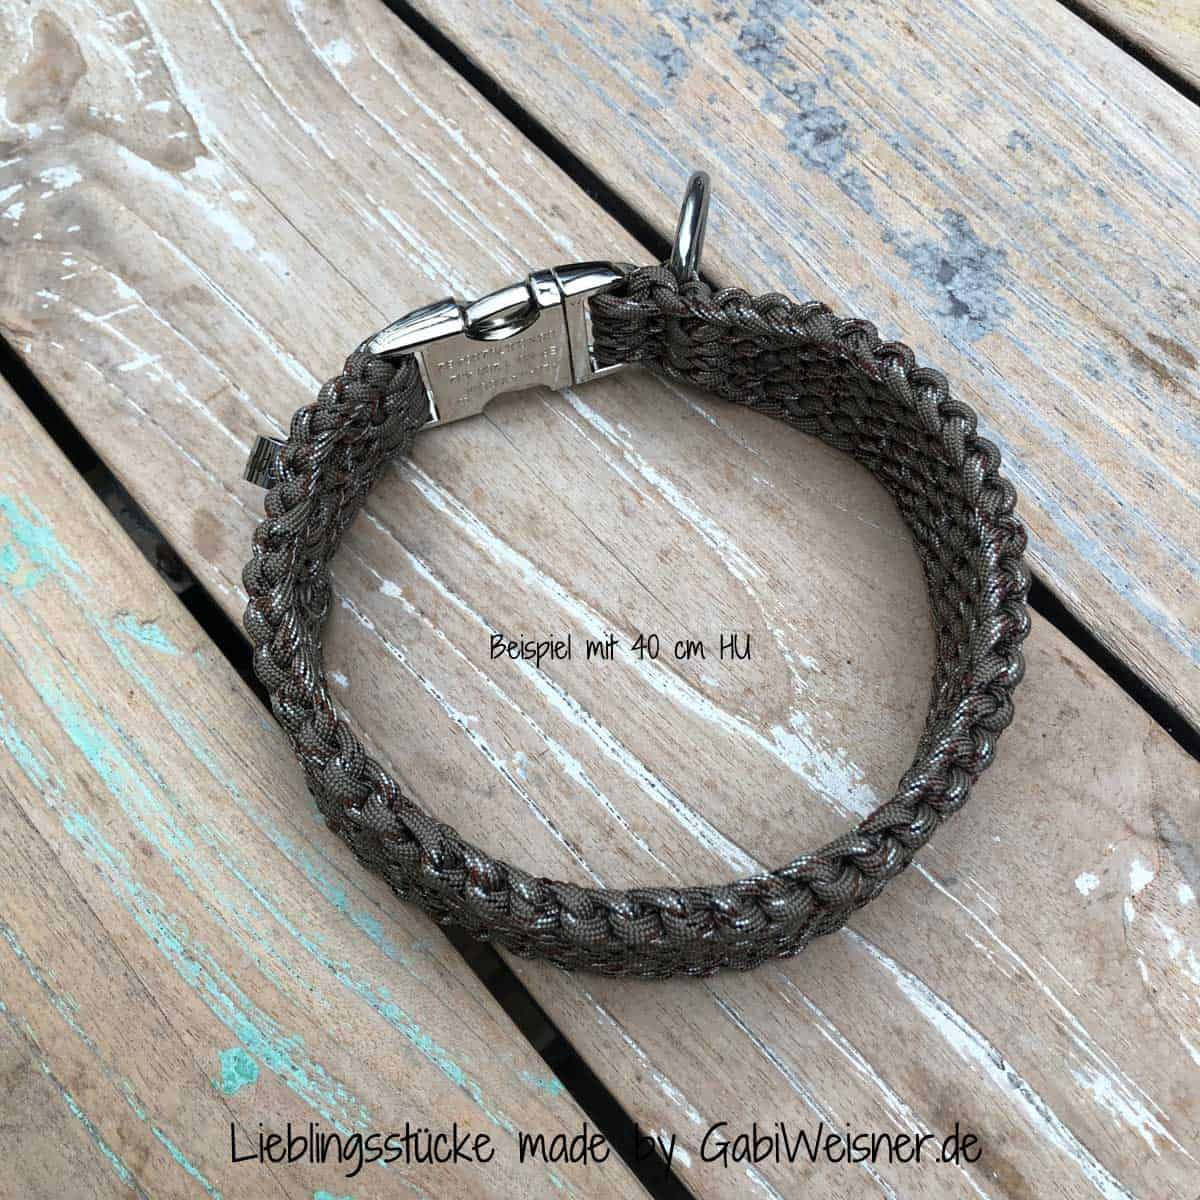 Hundehalsband Paracord 4 cm breit in Camouflage Taupe